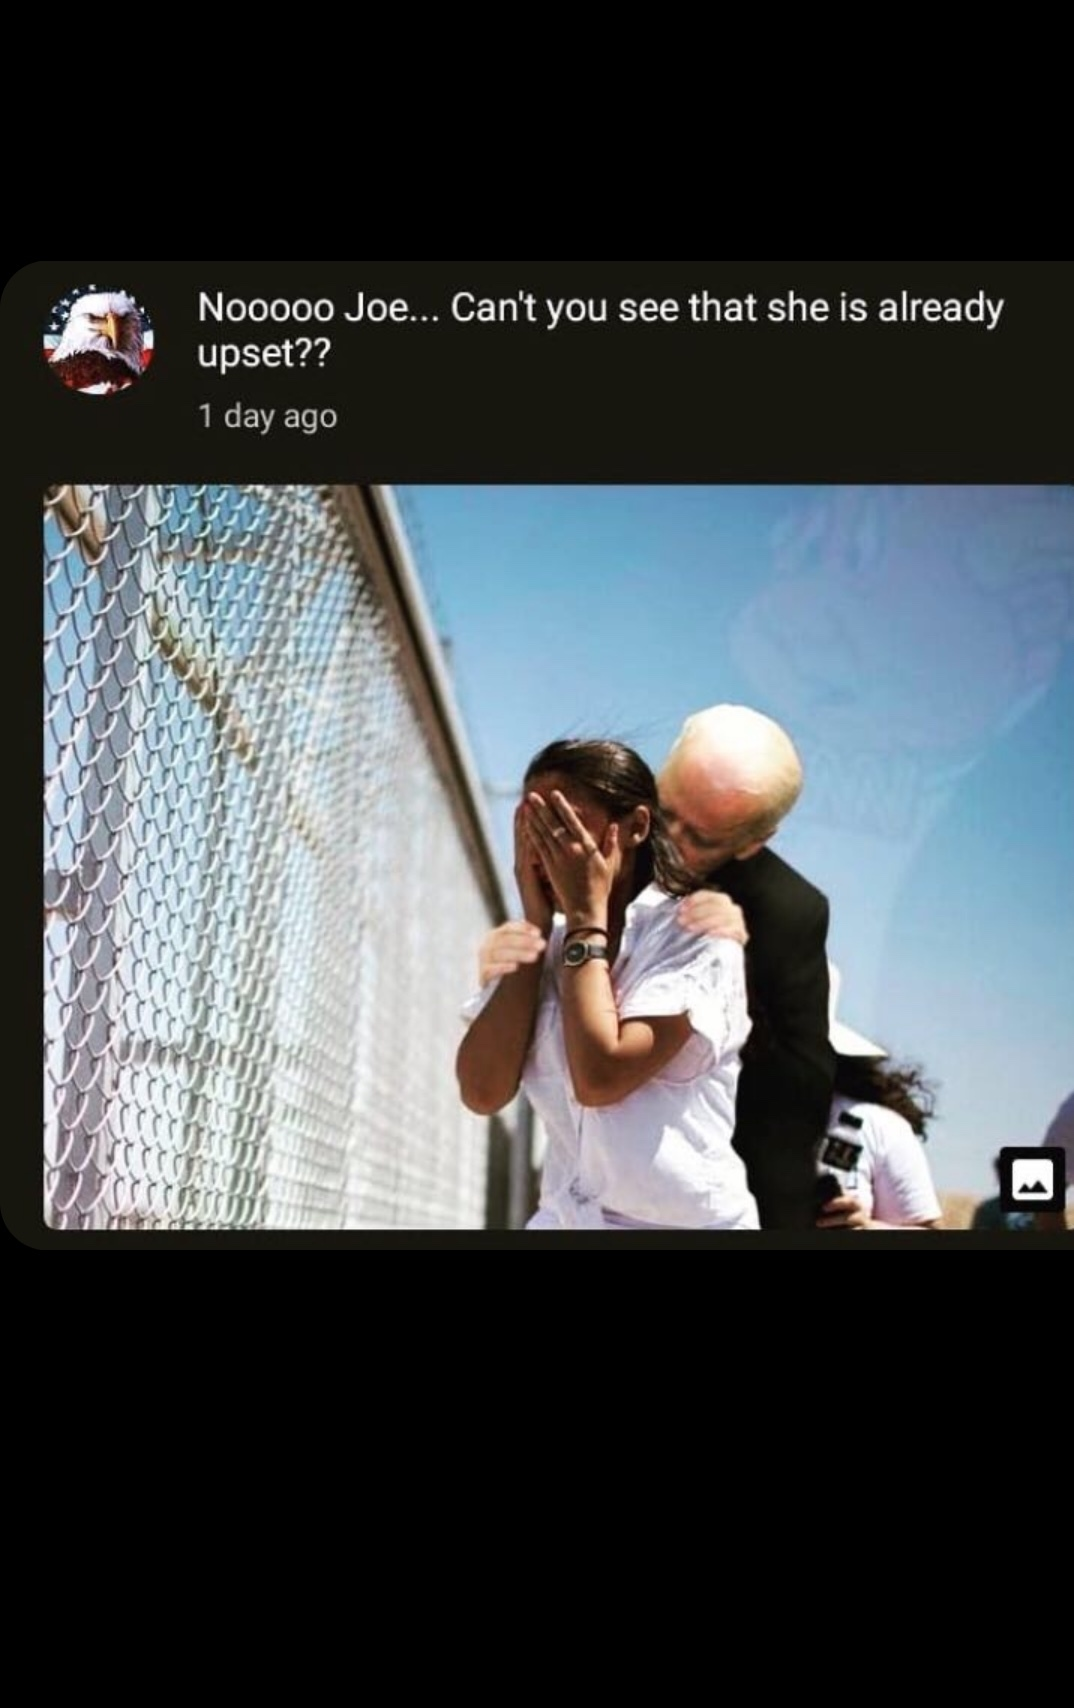 creepy joe at it again - meme